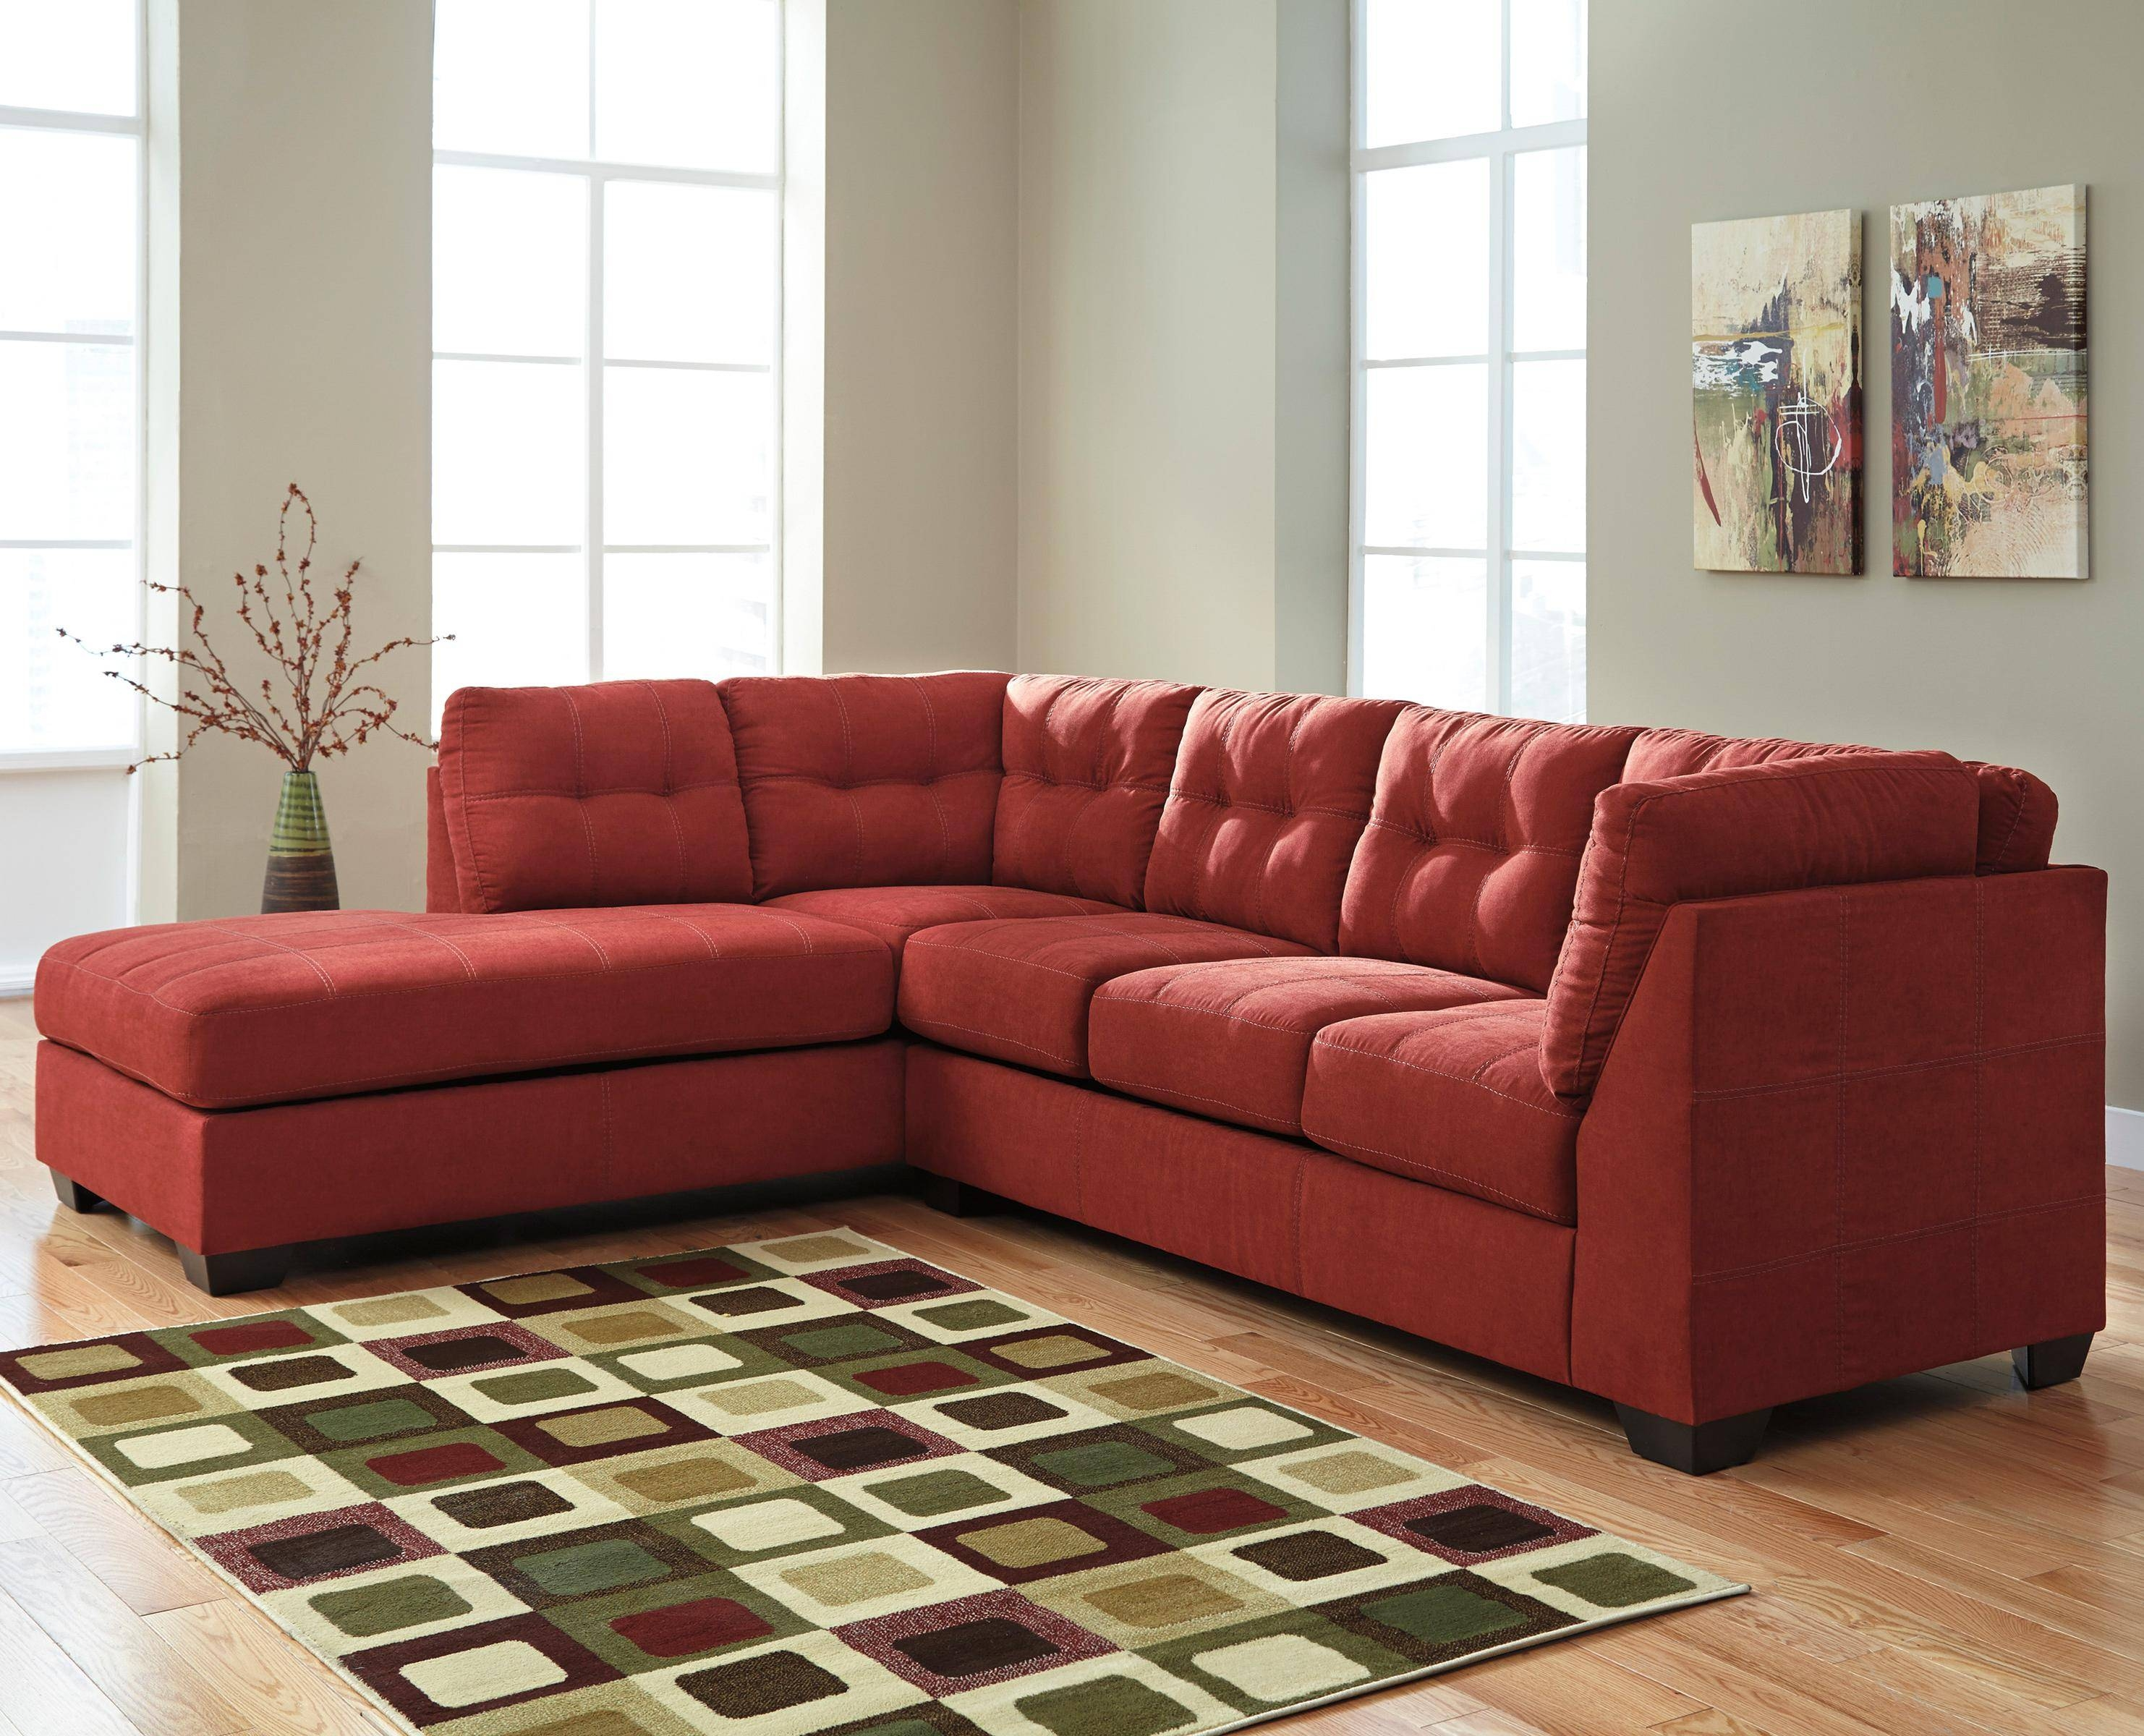 Benchcraft Maier – Sienna 2 Piece Sectional With Left Chaise With Sectional Sofa With 2 Chaises (View 11 of 30)